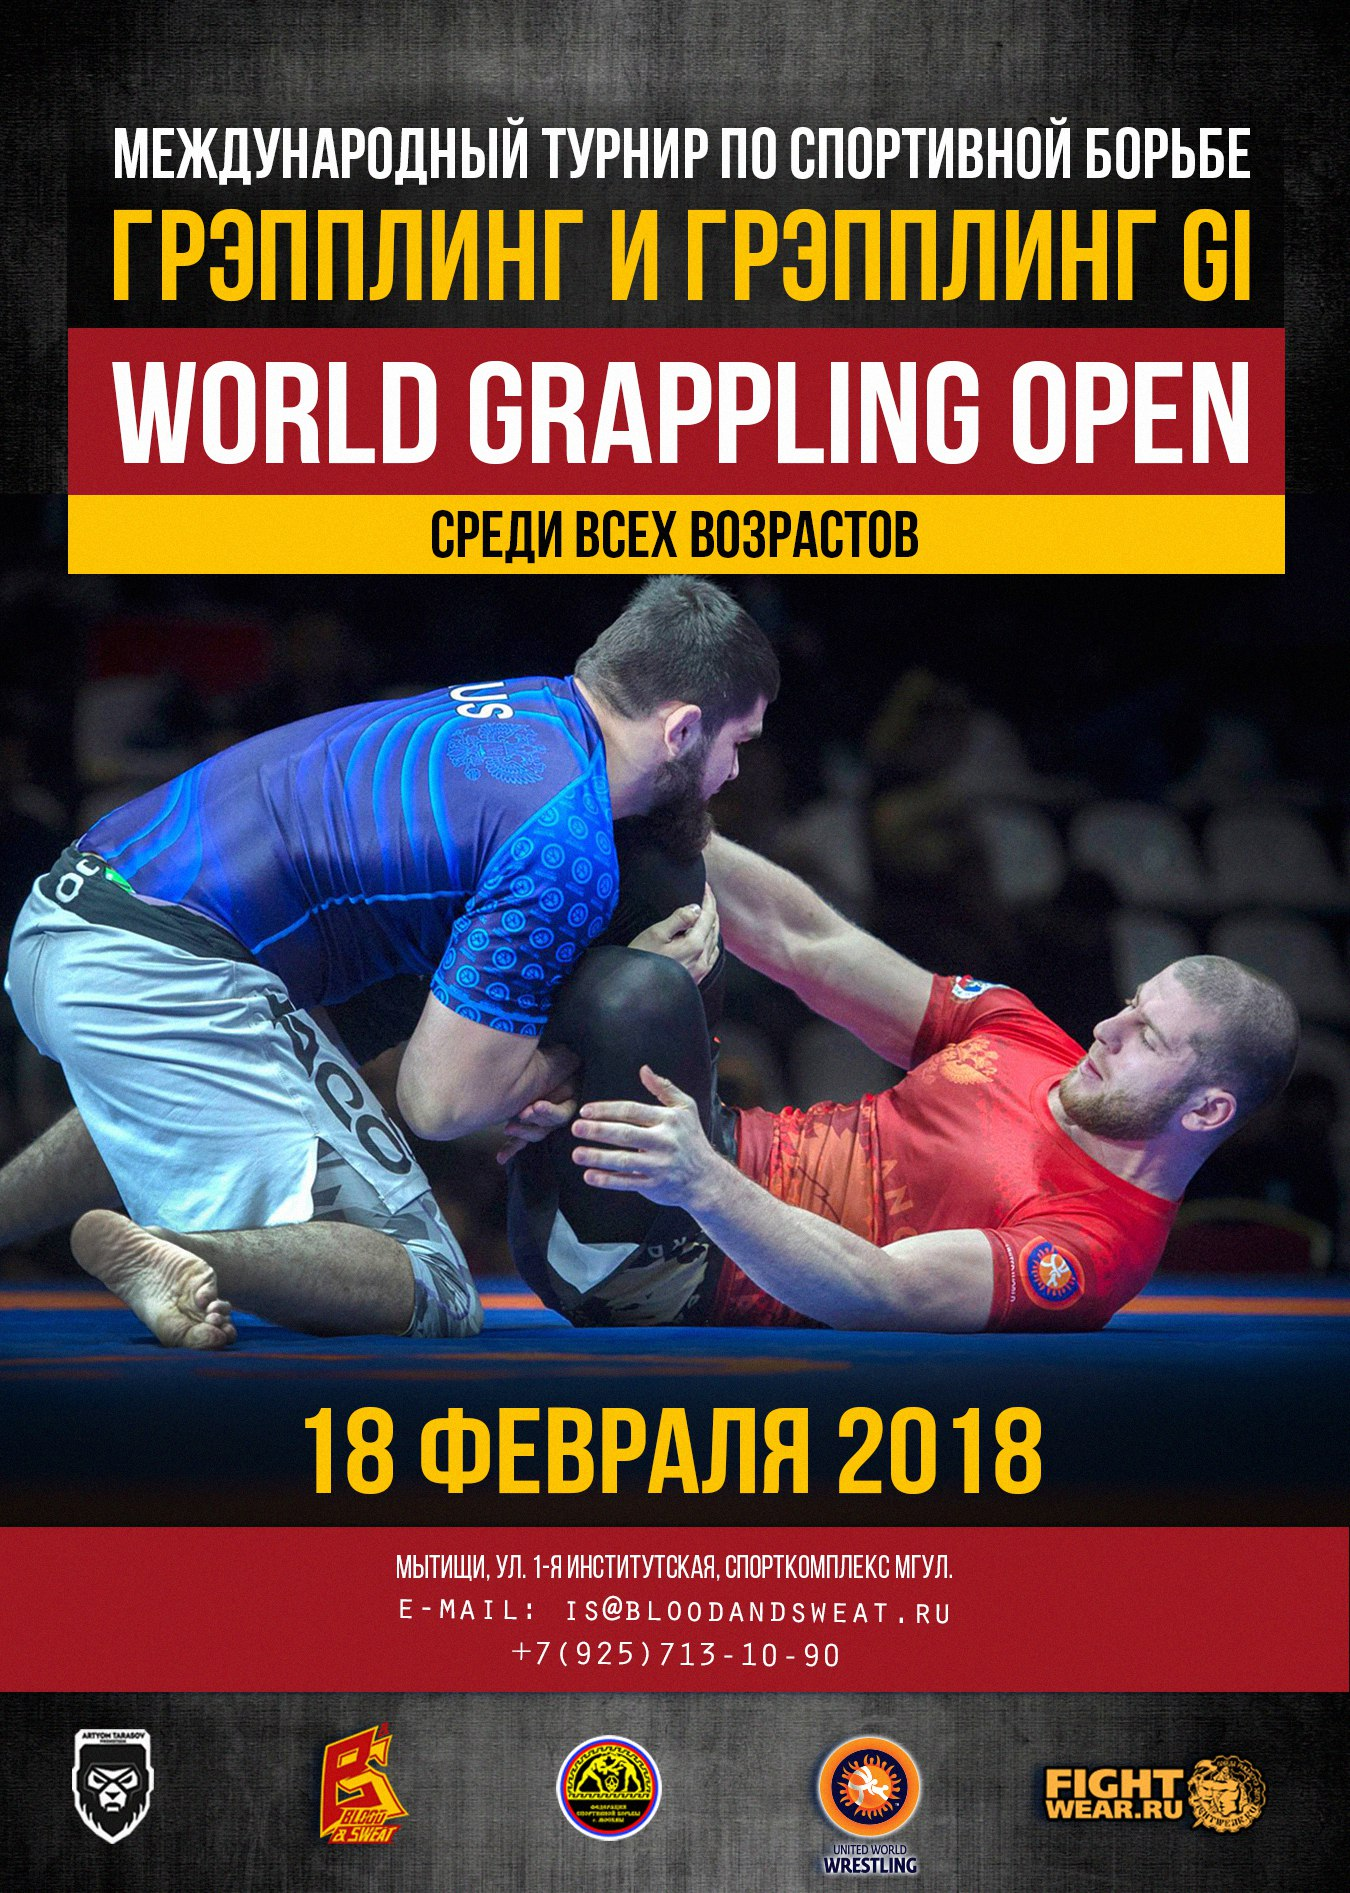 World Grappling Open !!!